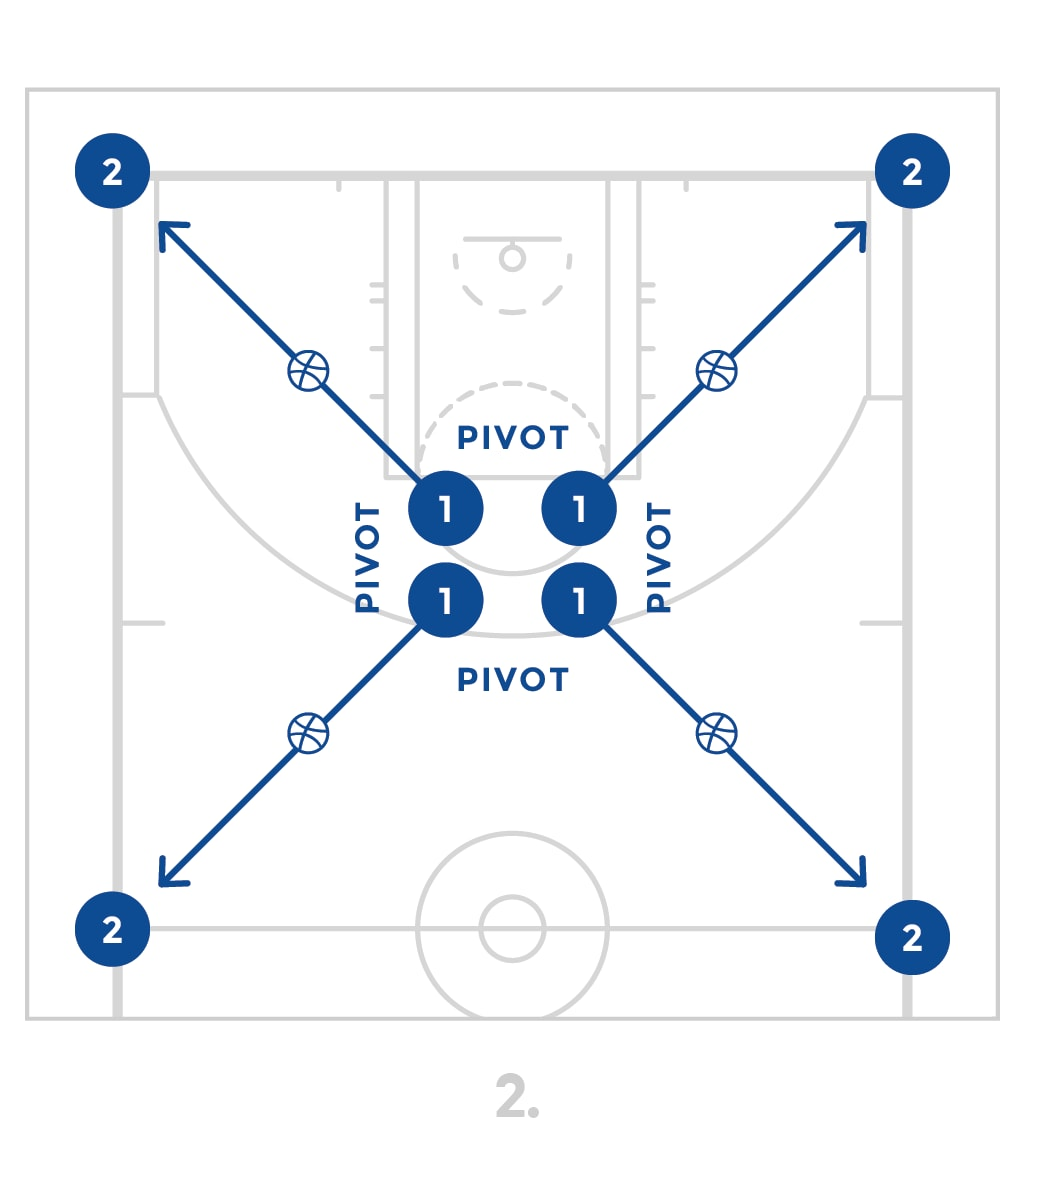 jrnba_starter_pp9_4cornerpassingdrill_diagram2of2